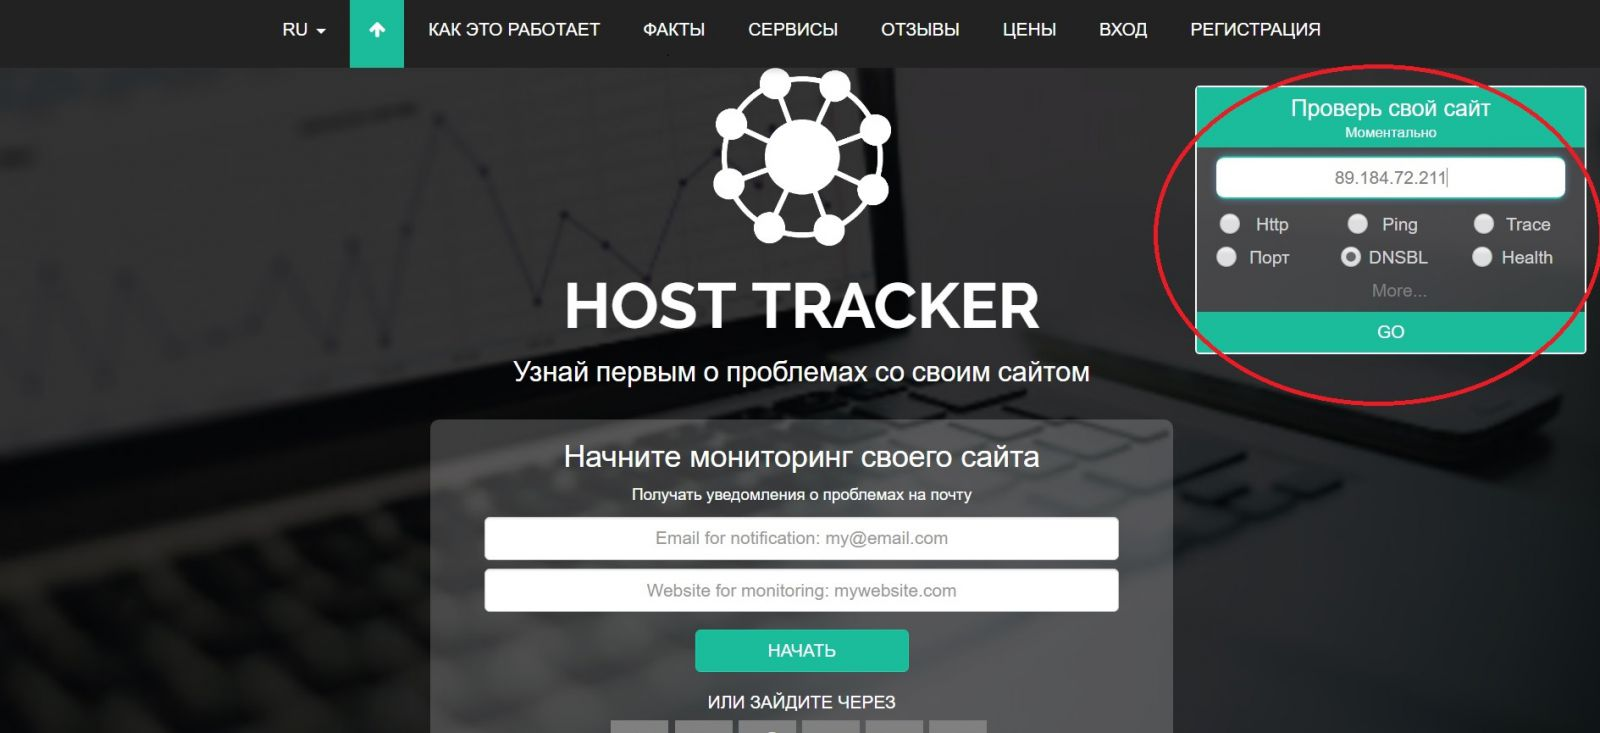 IP by Host Tracker check